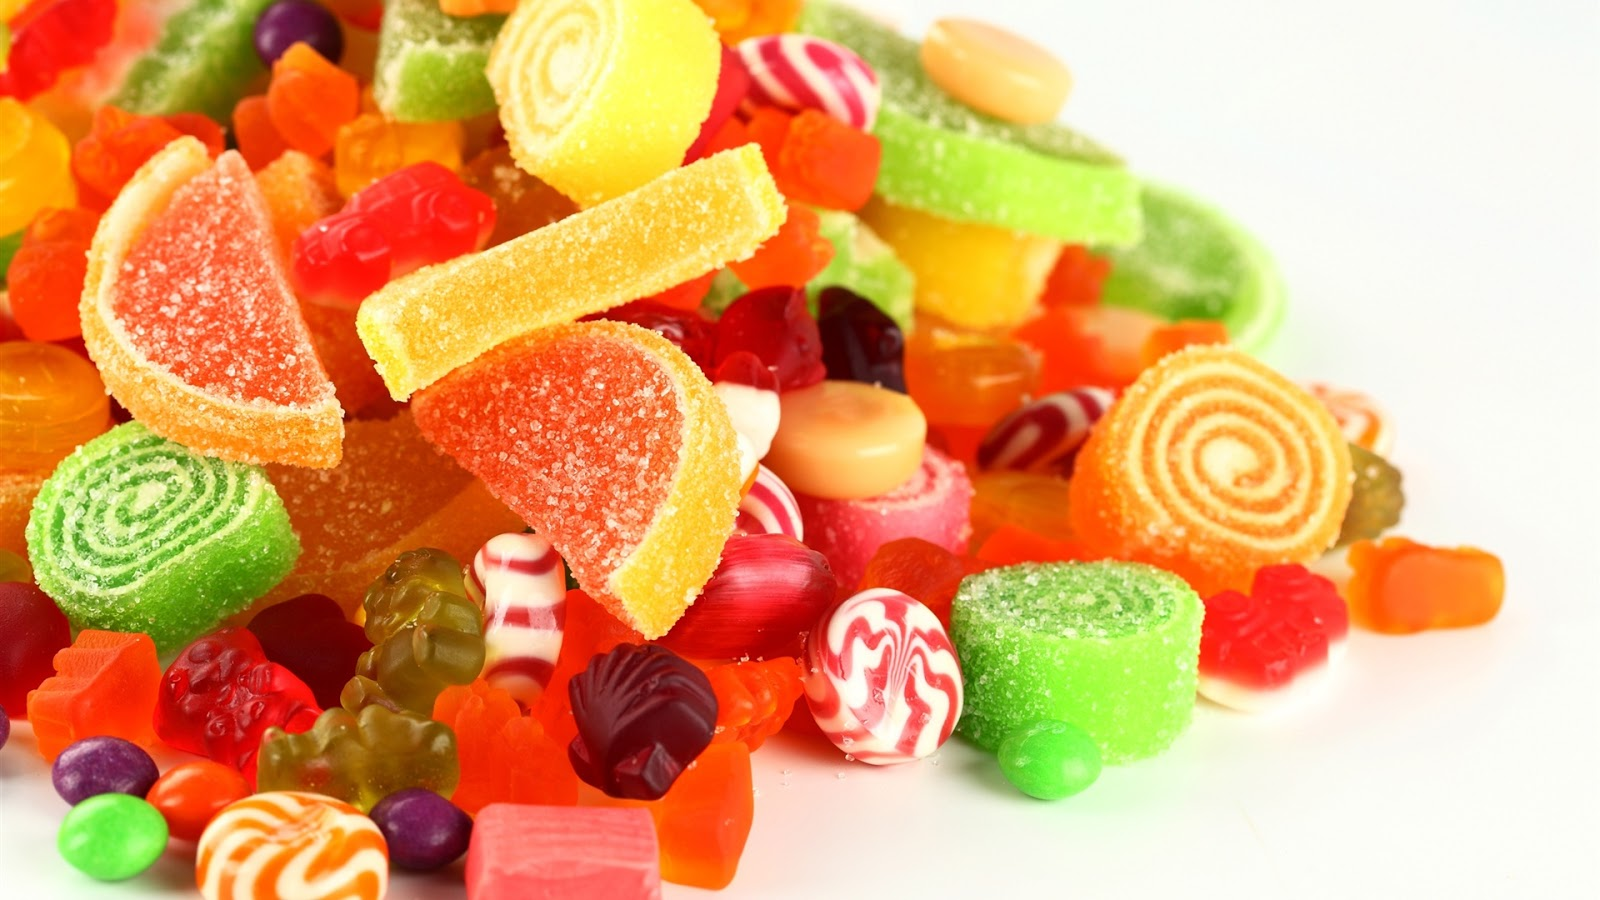 http://4.bp.blogspot.com/-QVW3CUUjKfo/UVf9Xv9-OCI/AAAAAAAASnY/XHJFjPv8NzY/s1600/The-dazzling-colorful-candy-fruit-sugar_1080.jpg